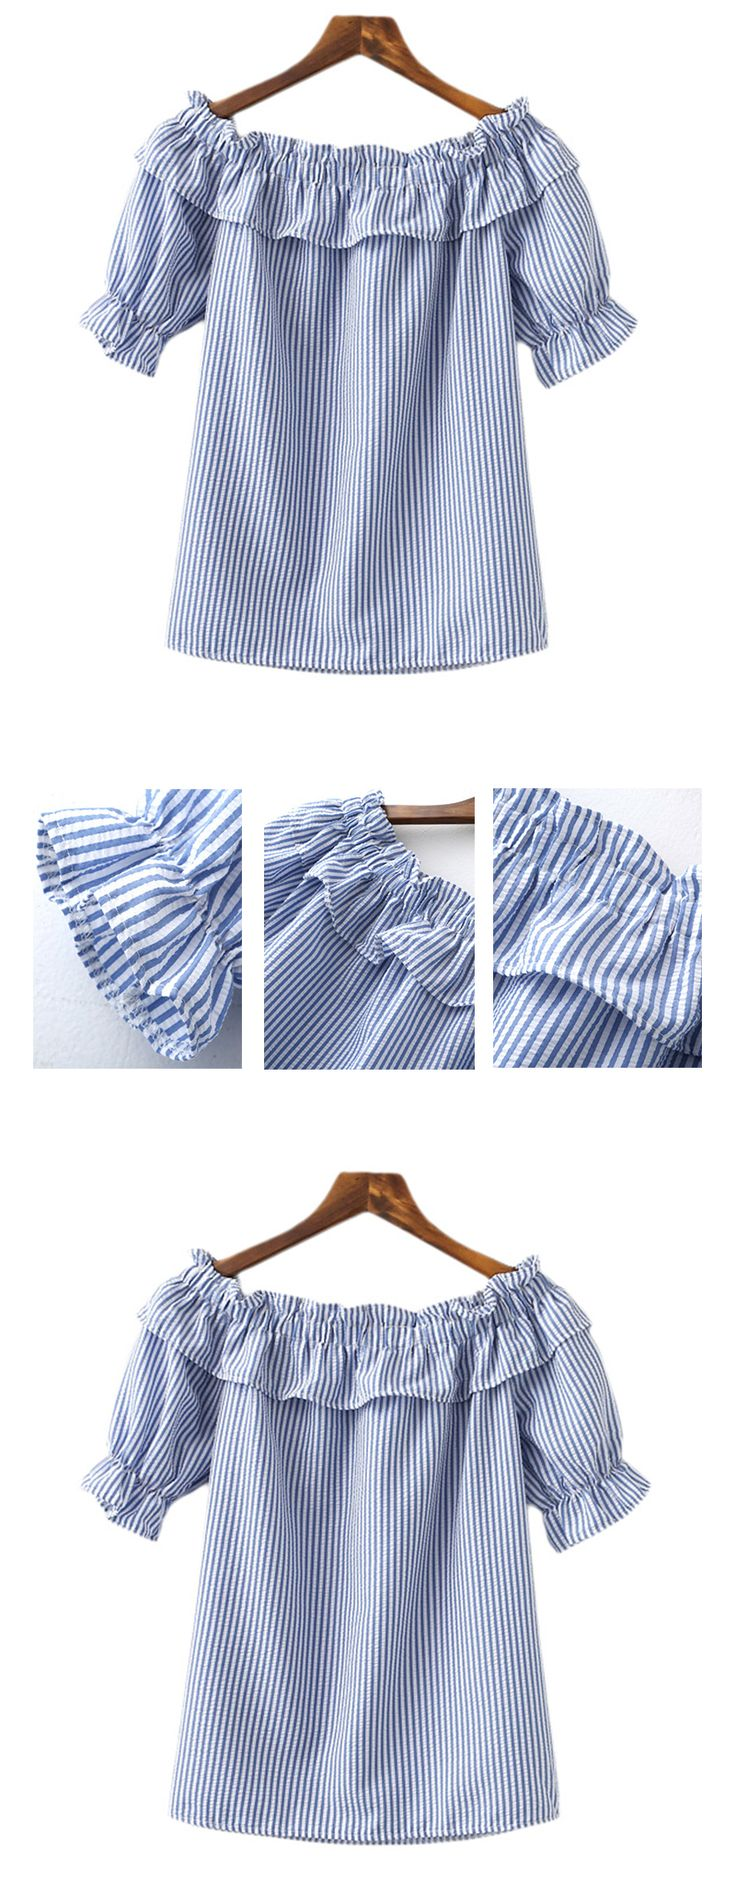 Vacation style-Blue White Stripe Ruffle Boat Neck Blouse. Hot top for women this summer. The trendy design is combined Korean-style with European-style. Cute and fashion.